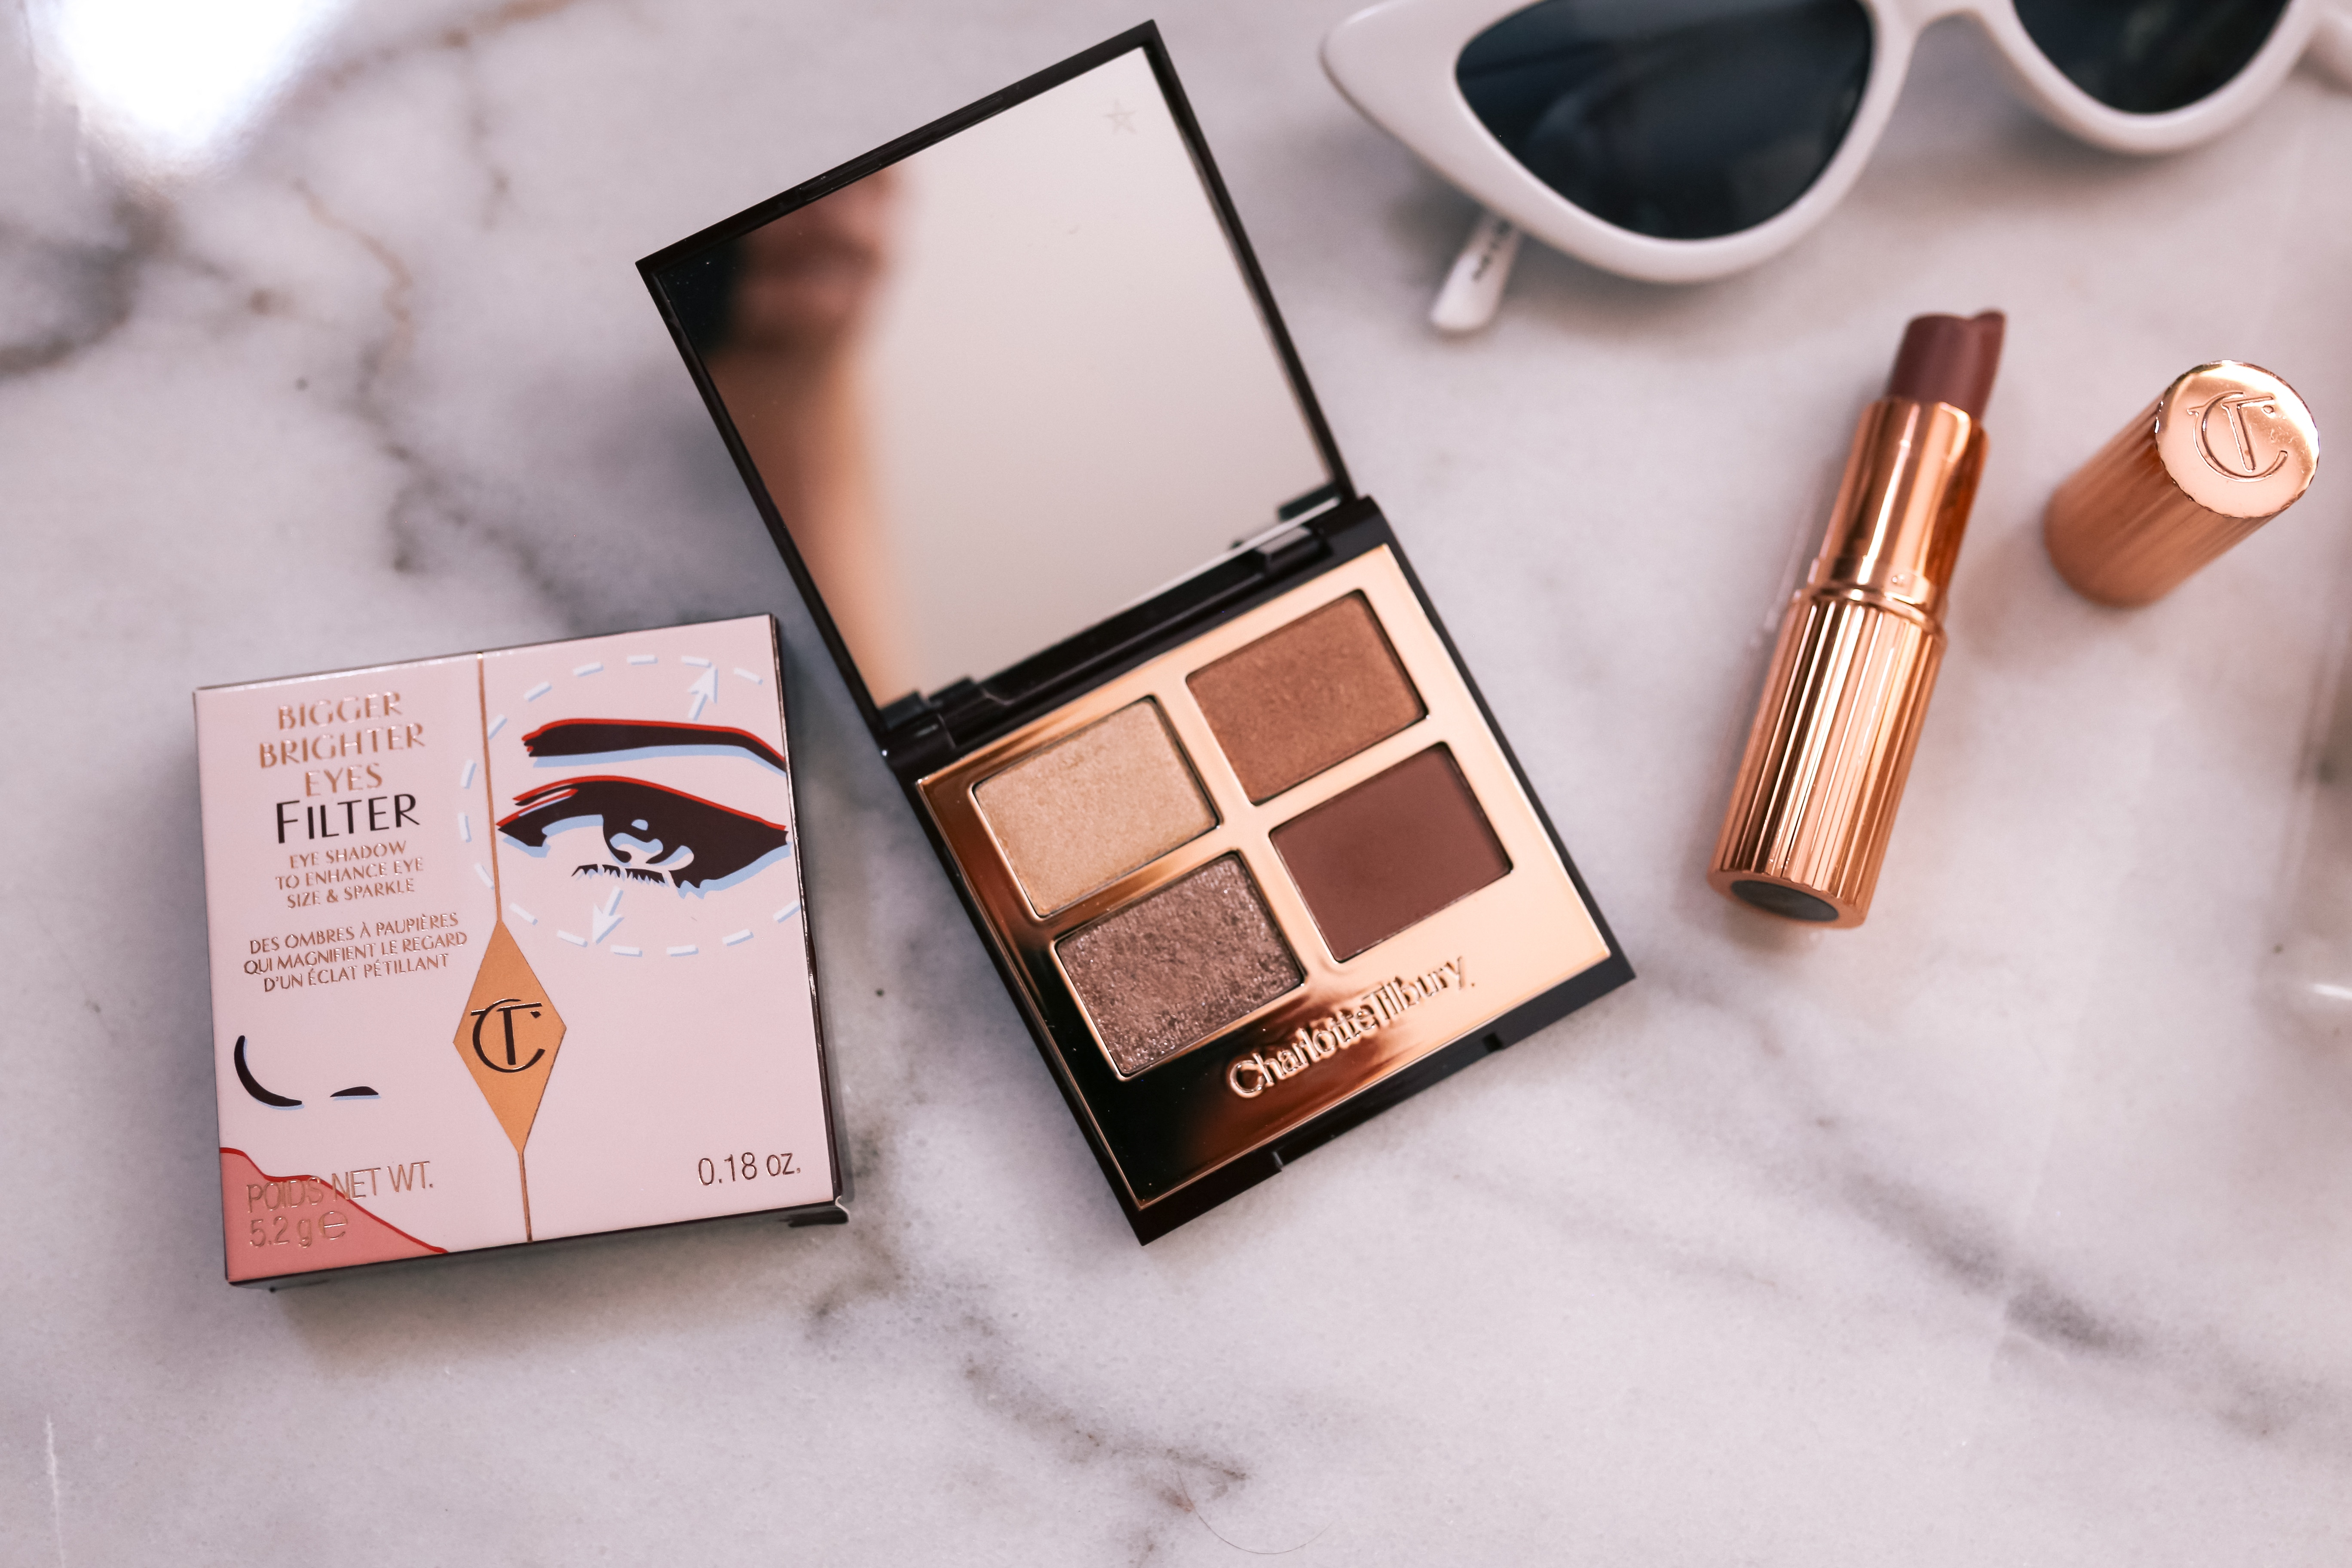 charlotte tilbury bigger brighter eyes Exagerr-Eyes palette review